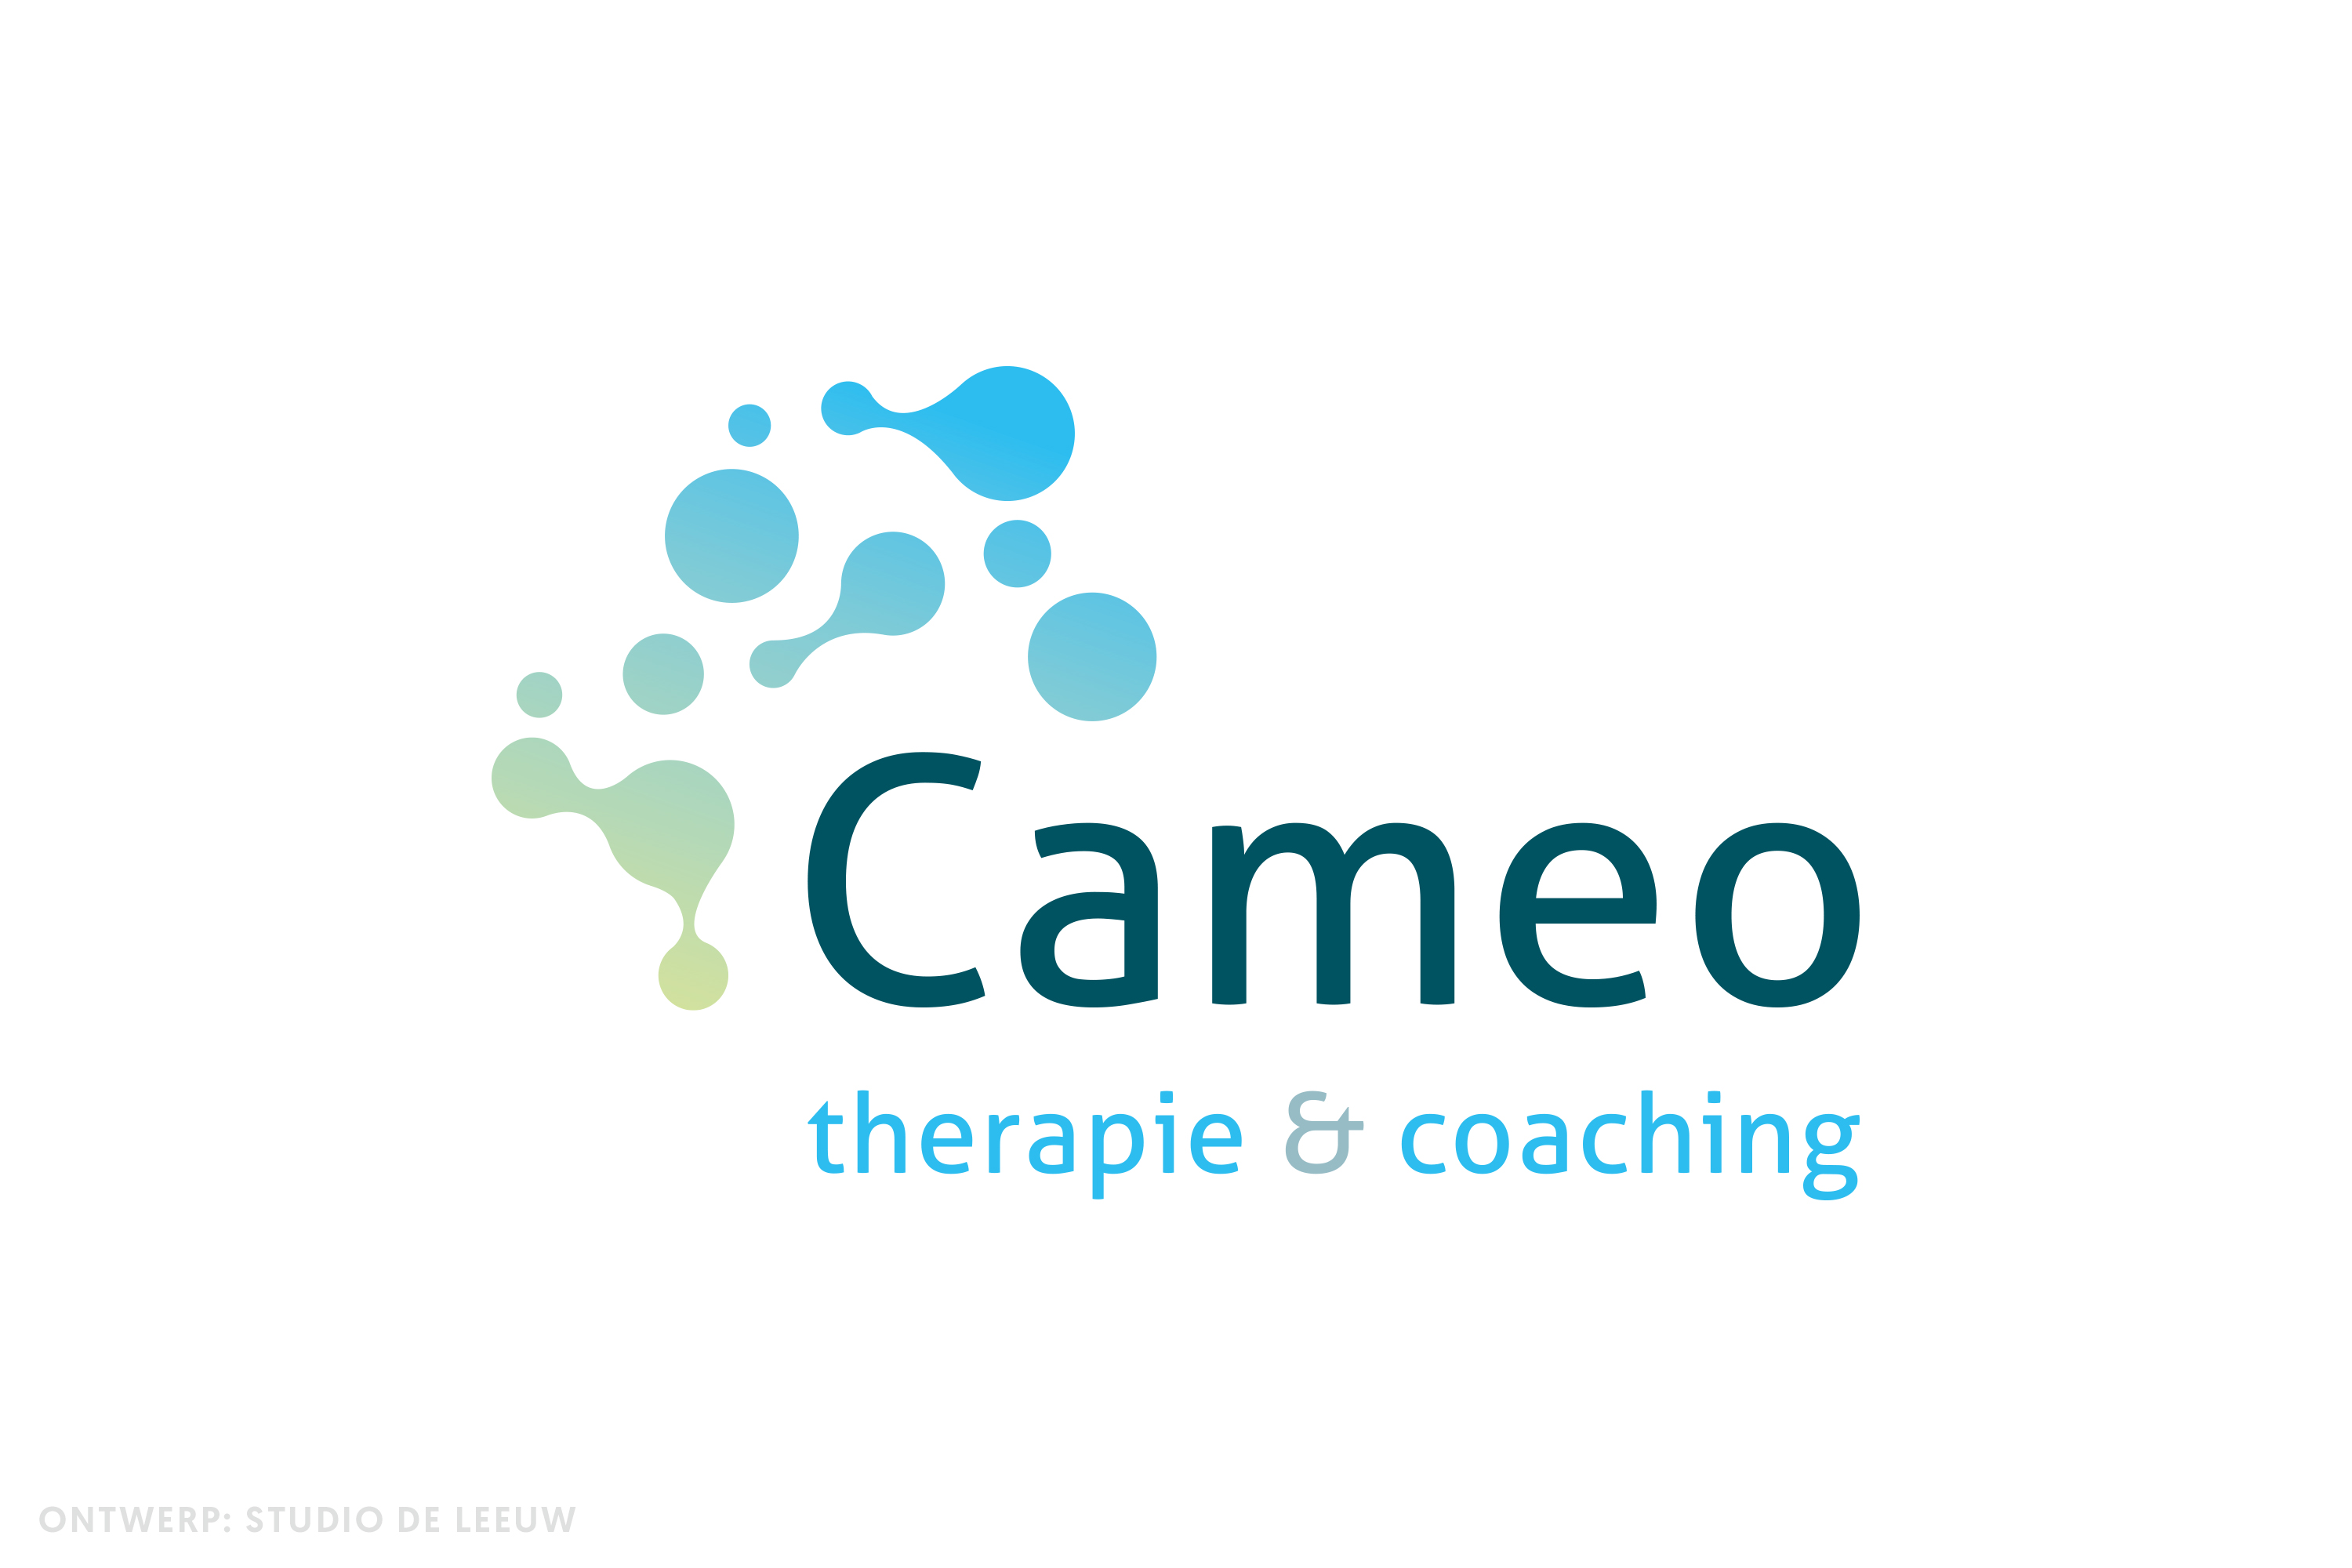 Cameo therapie en coaching